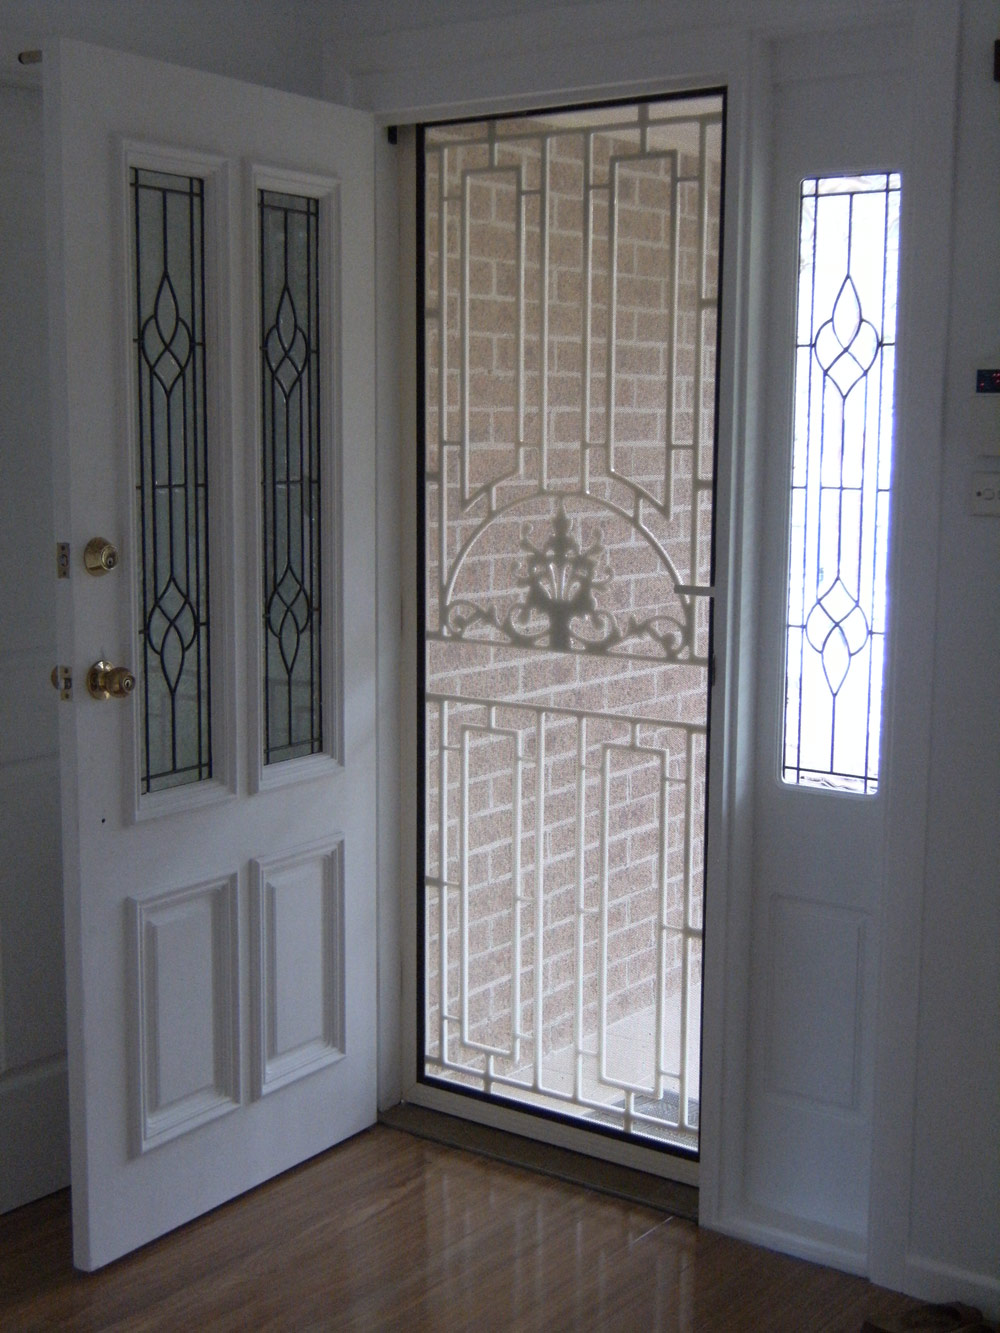 decorative security screen doors. Screen Doors Decorative Security